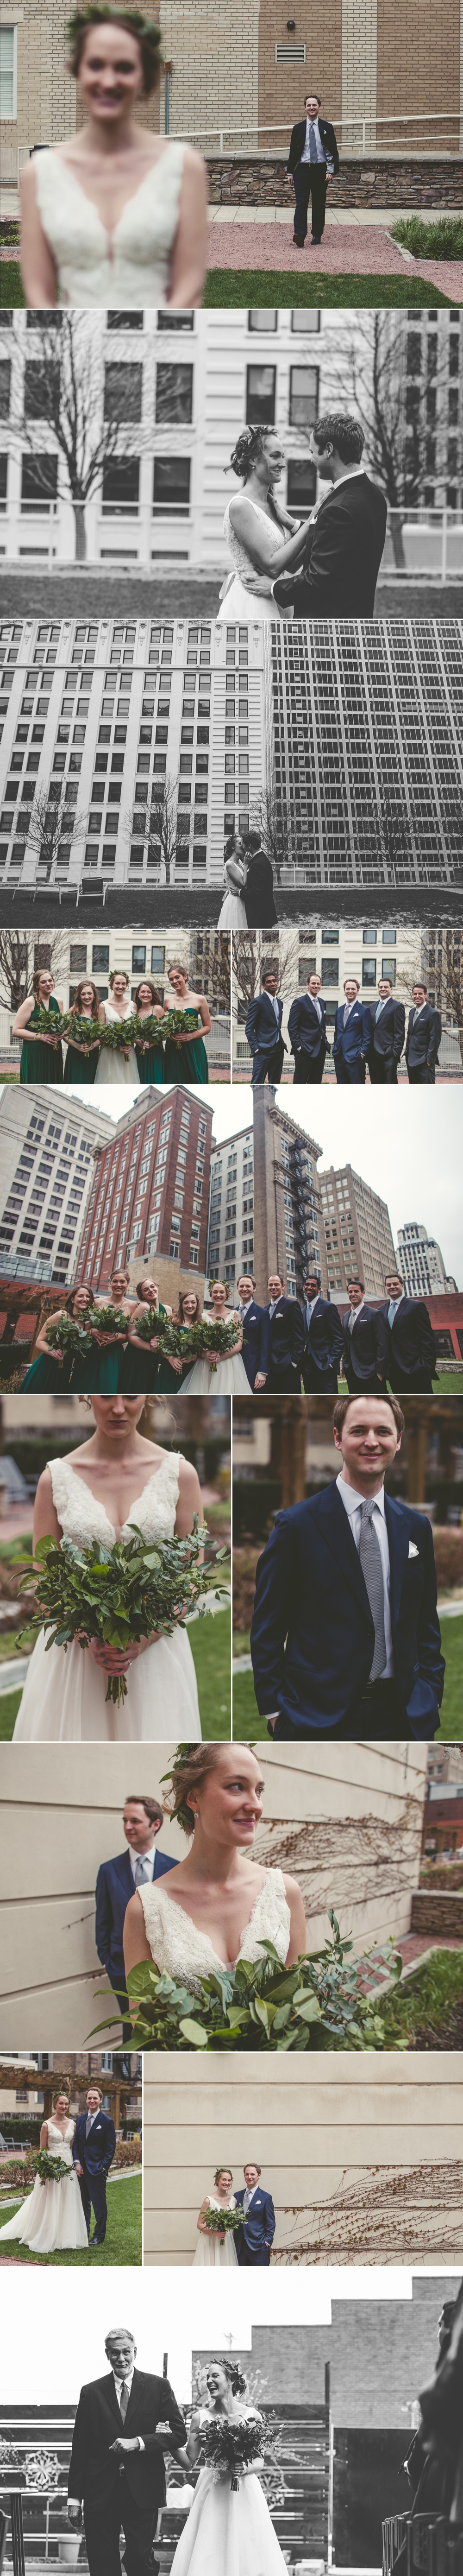 mae_chris_hobbs_building_feasts_of_fancy_0002_jason_domingues_photography_best_kansas_city_photographer_kc_weddings_